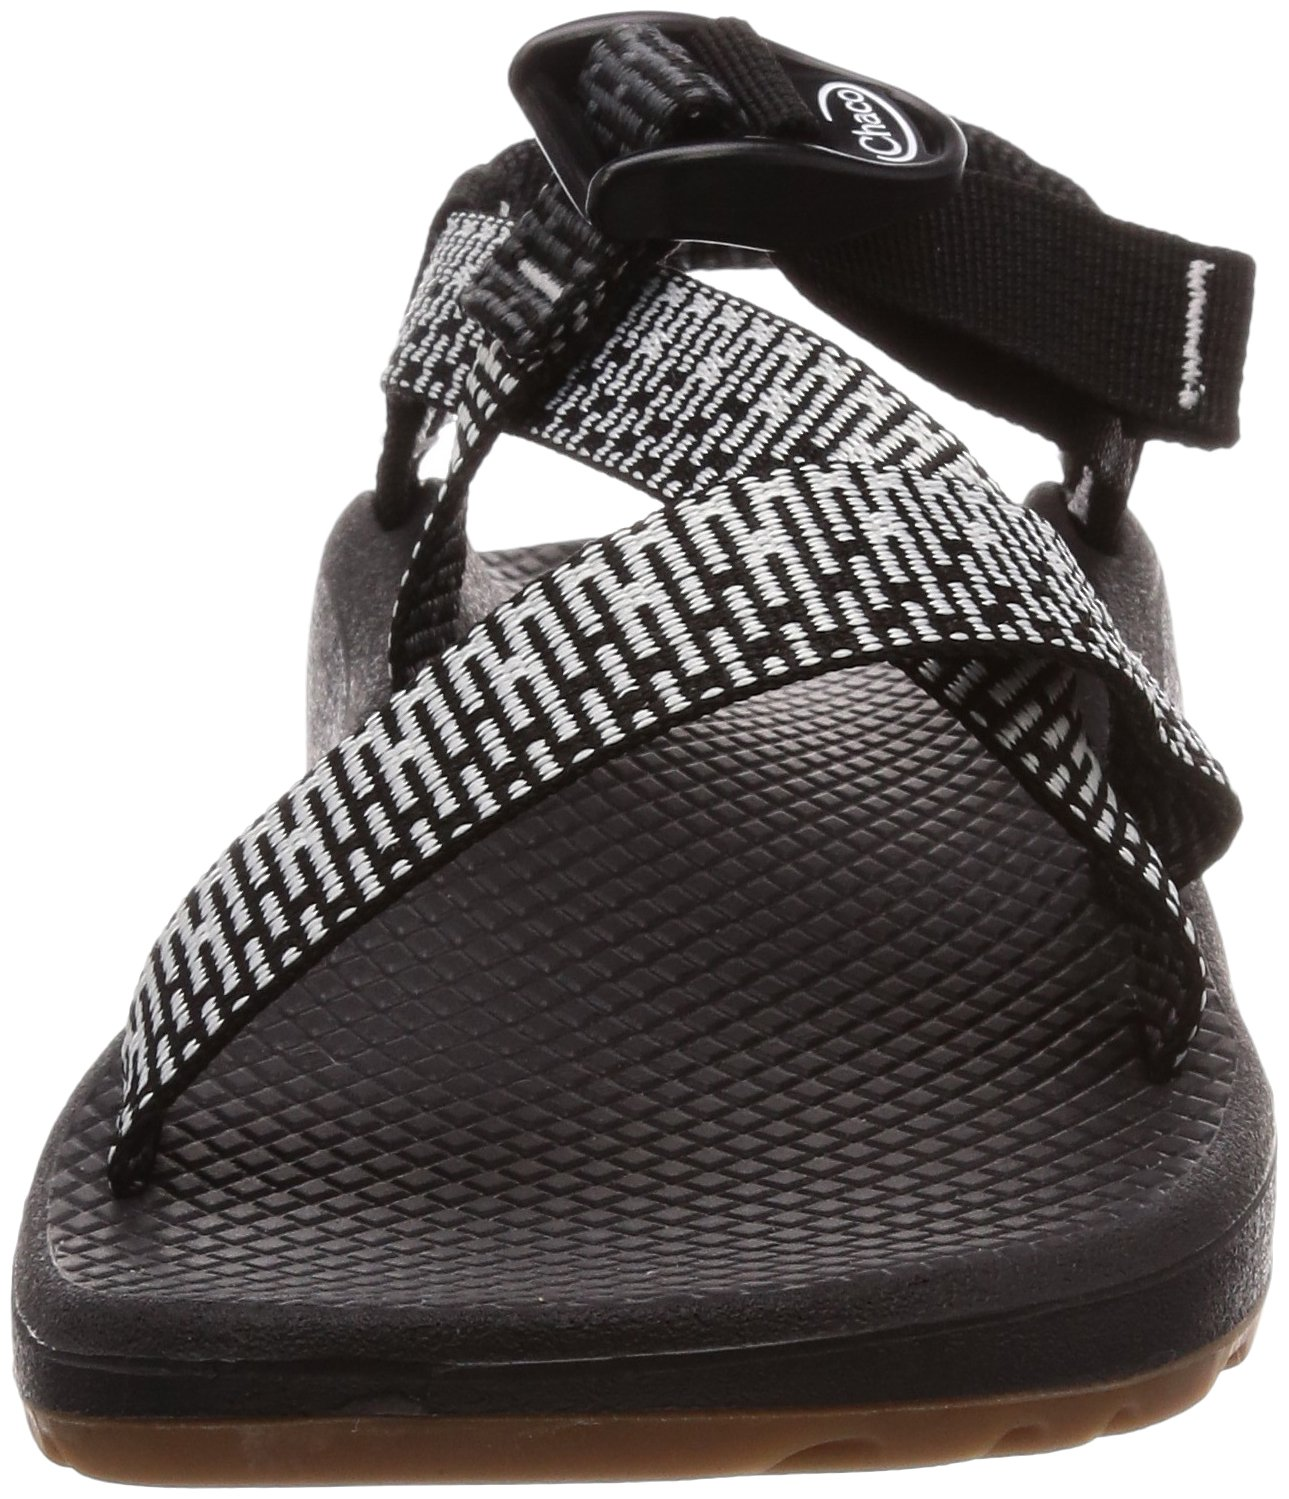 Chaco Women's Zcloud Sport US|Penny Sandal B071X5NWJ6 12 B(M) US|Penny Sport Black 3a51a9